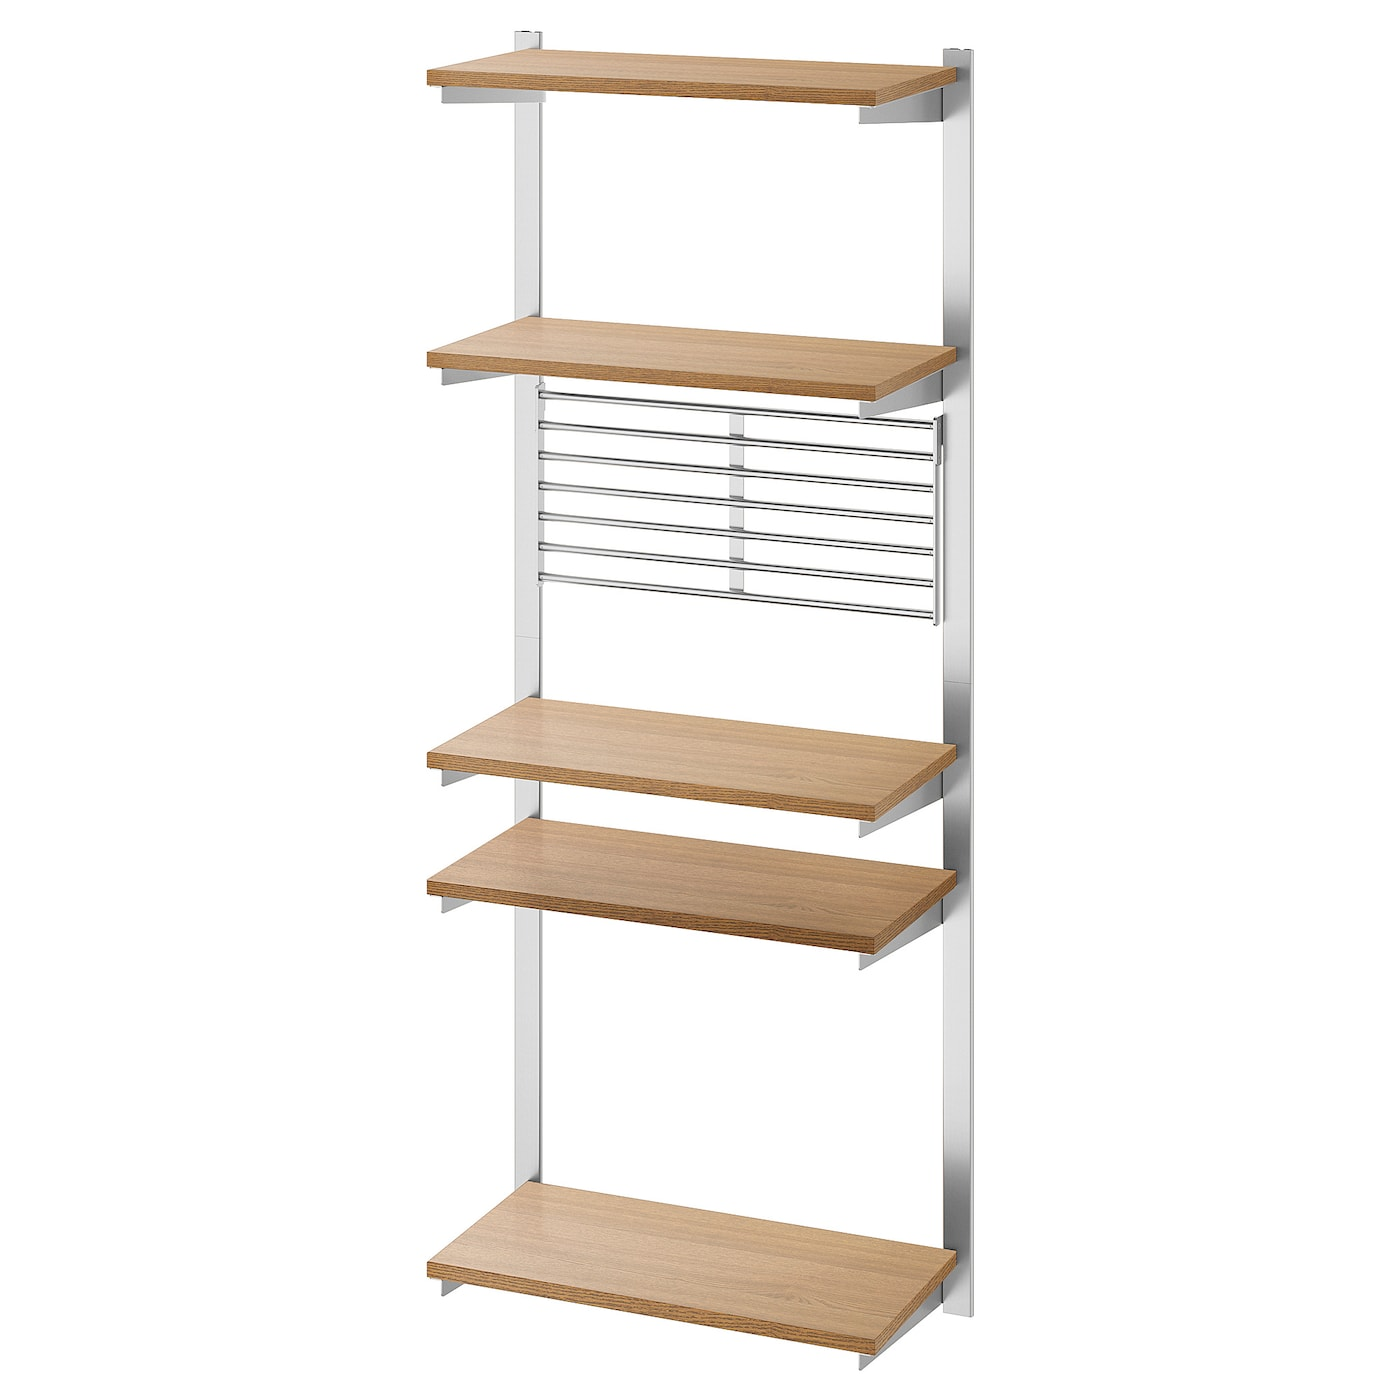 Picture of: Kungsfors Stang Med Hylde Vaeggitter Rustfrit Stal Ask Ikea